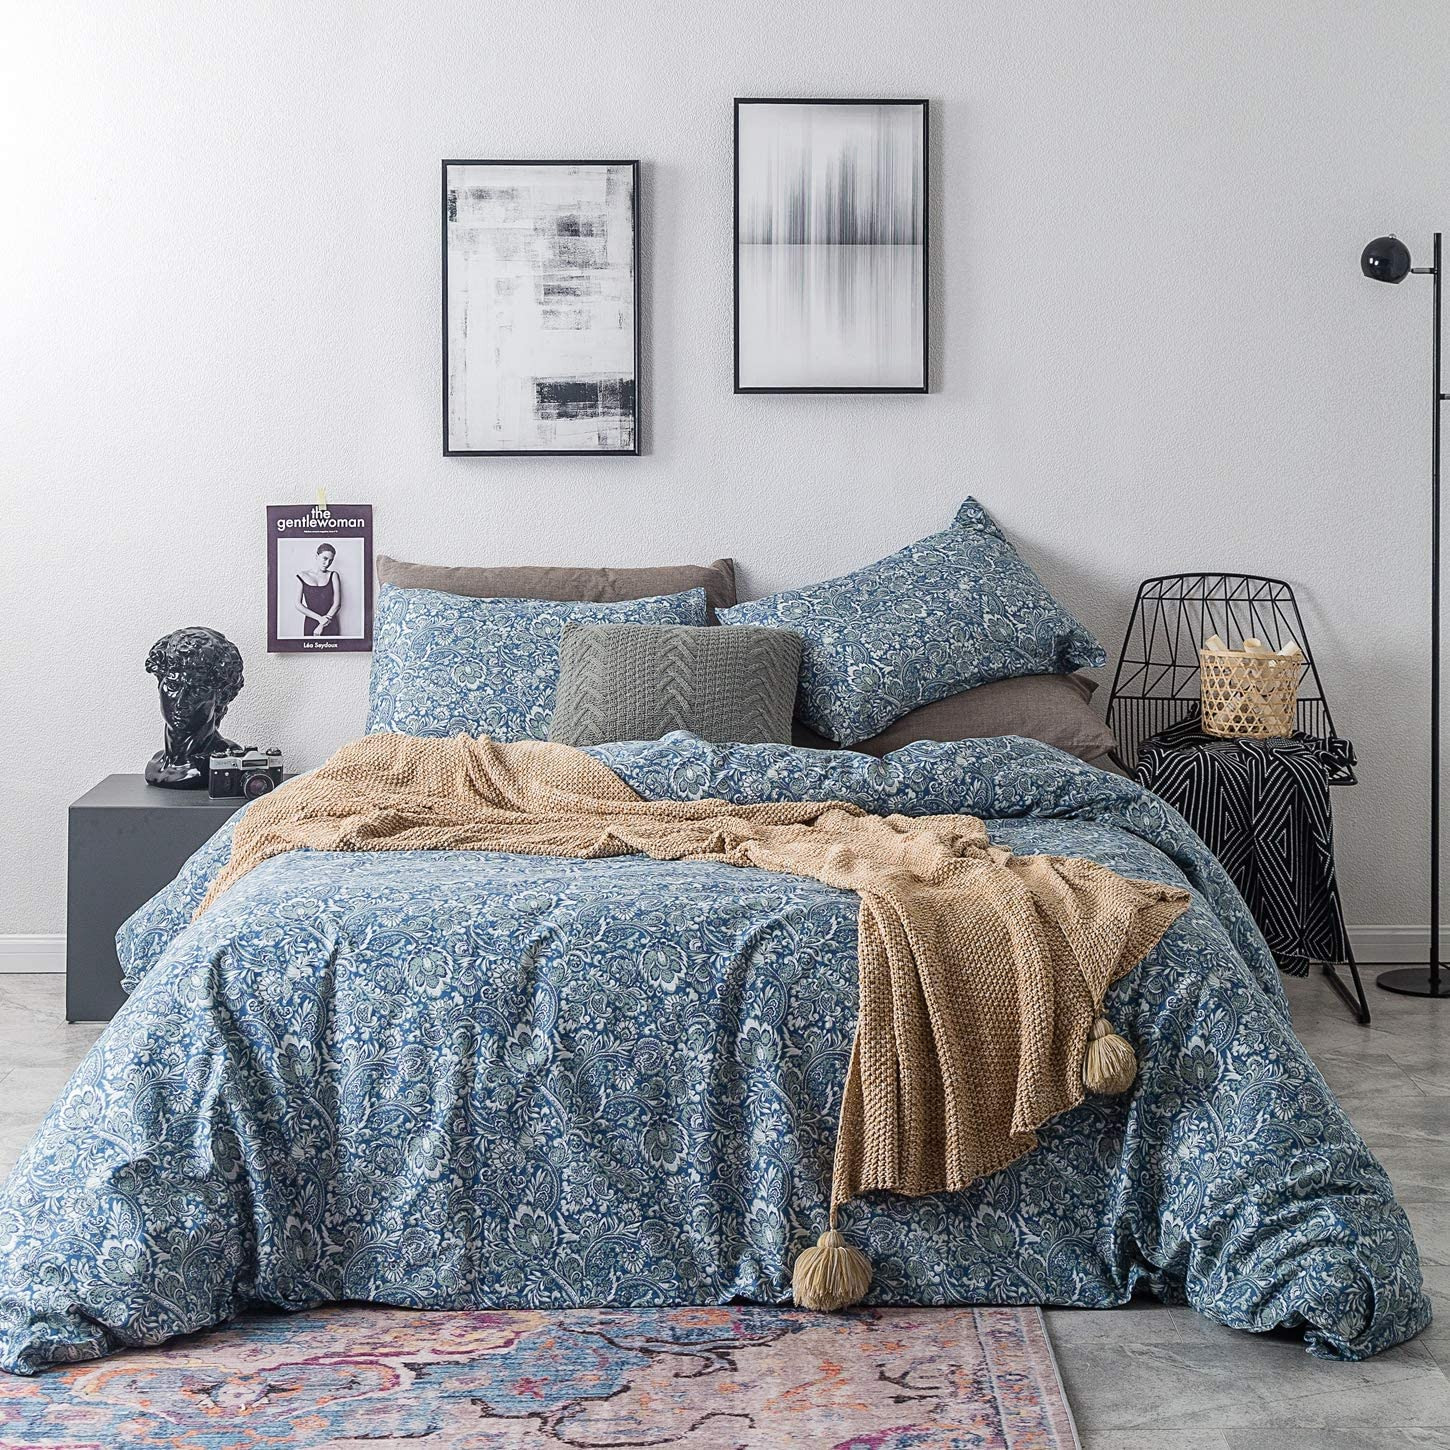 SUSYBAO 3 Piece Duvet Cover Set 100% Cotton Queen Size Teal Paisley Floral Bedding Set with Zipper Ties 1 Bohemian Flower Duvet Cover 2 Boho Chic Pillowcases Hotel Quality Soft Breathable Lgithweight